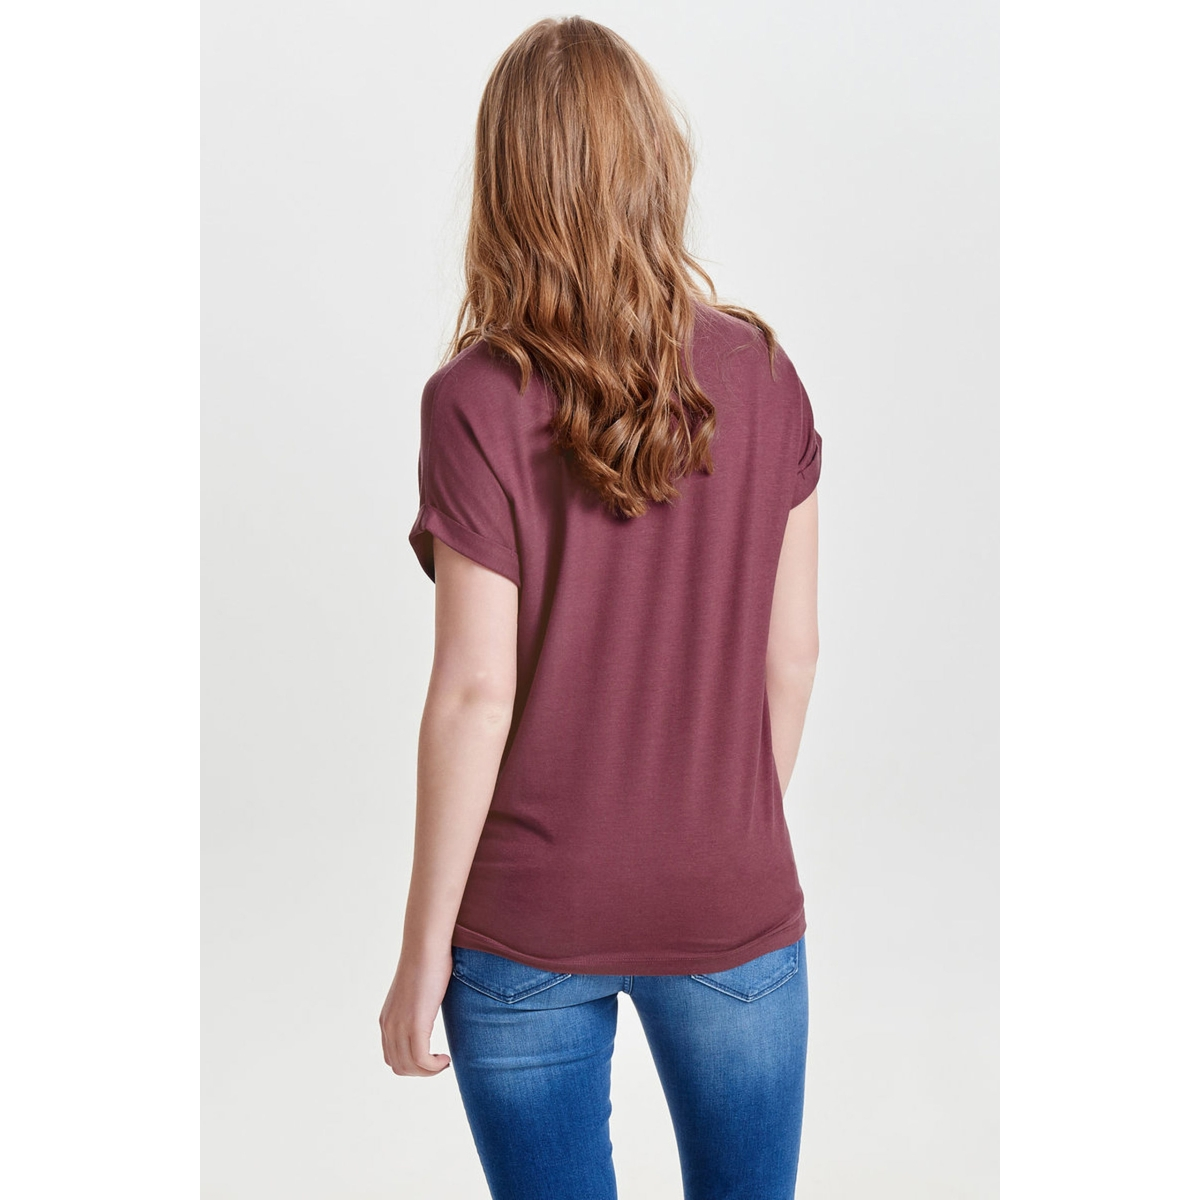 onlmoster s/s o-neck top noos jrs 15106662 only t-shirt wild ginger